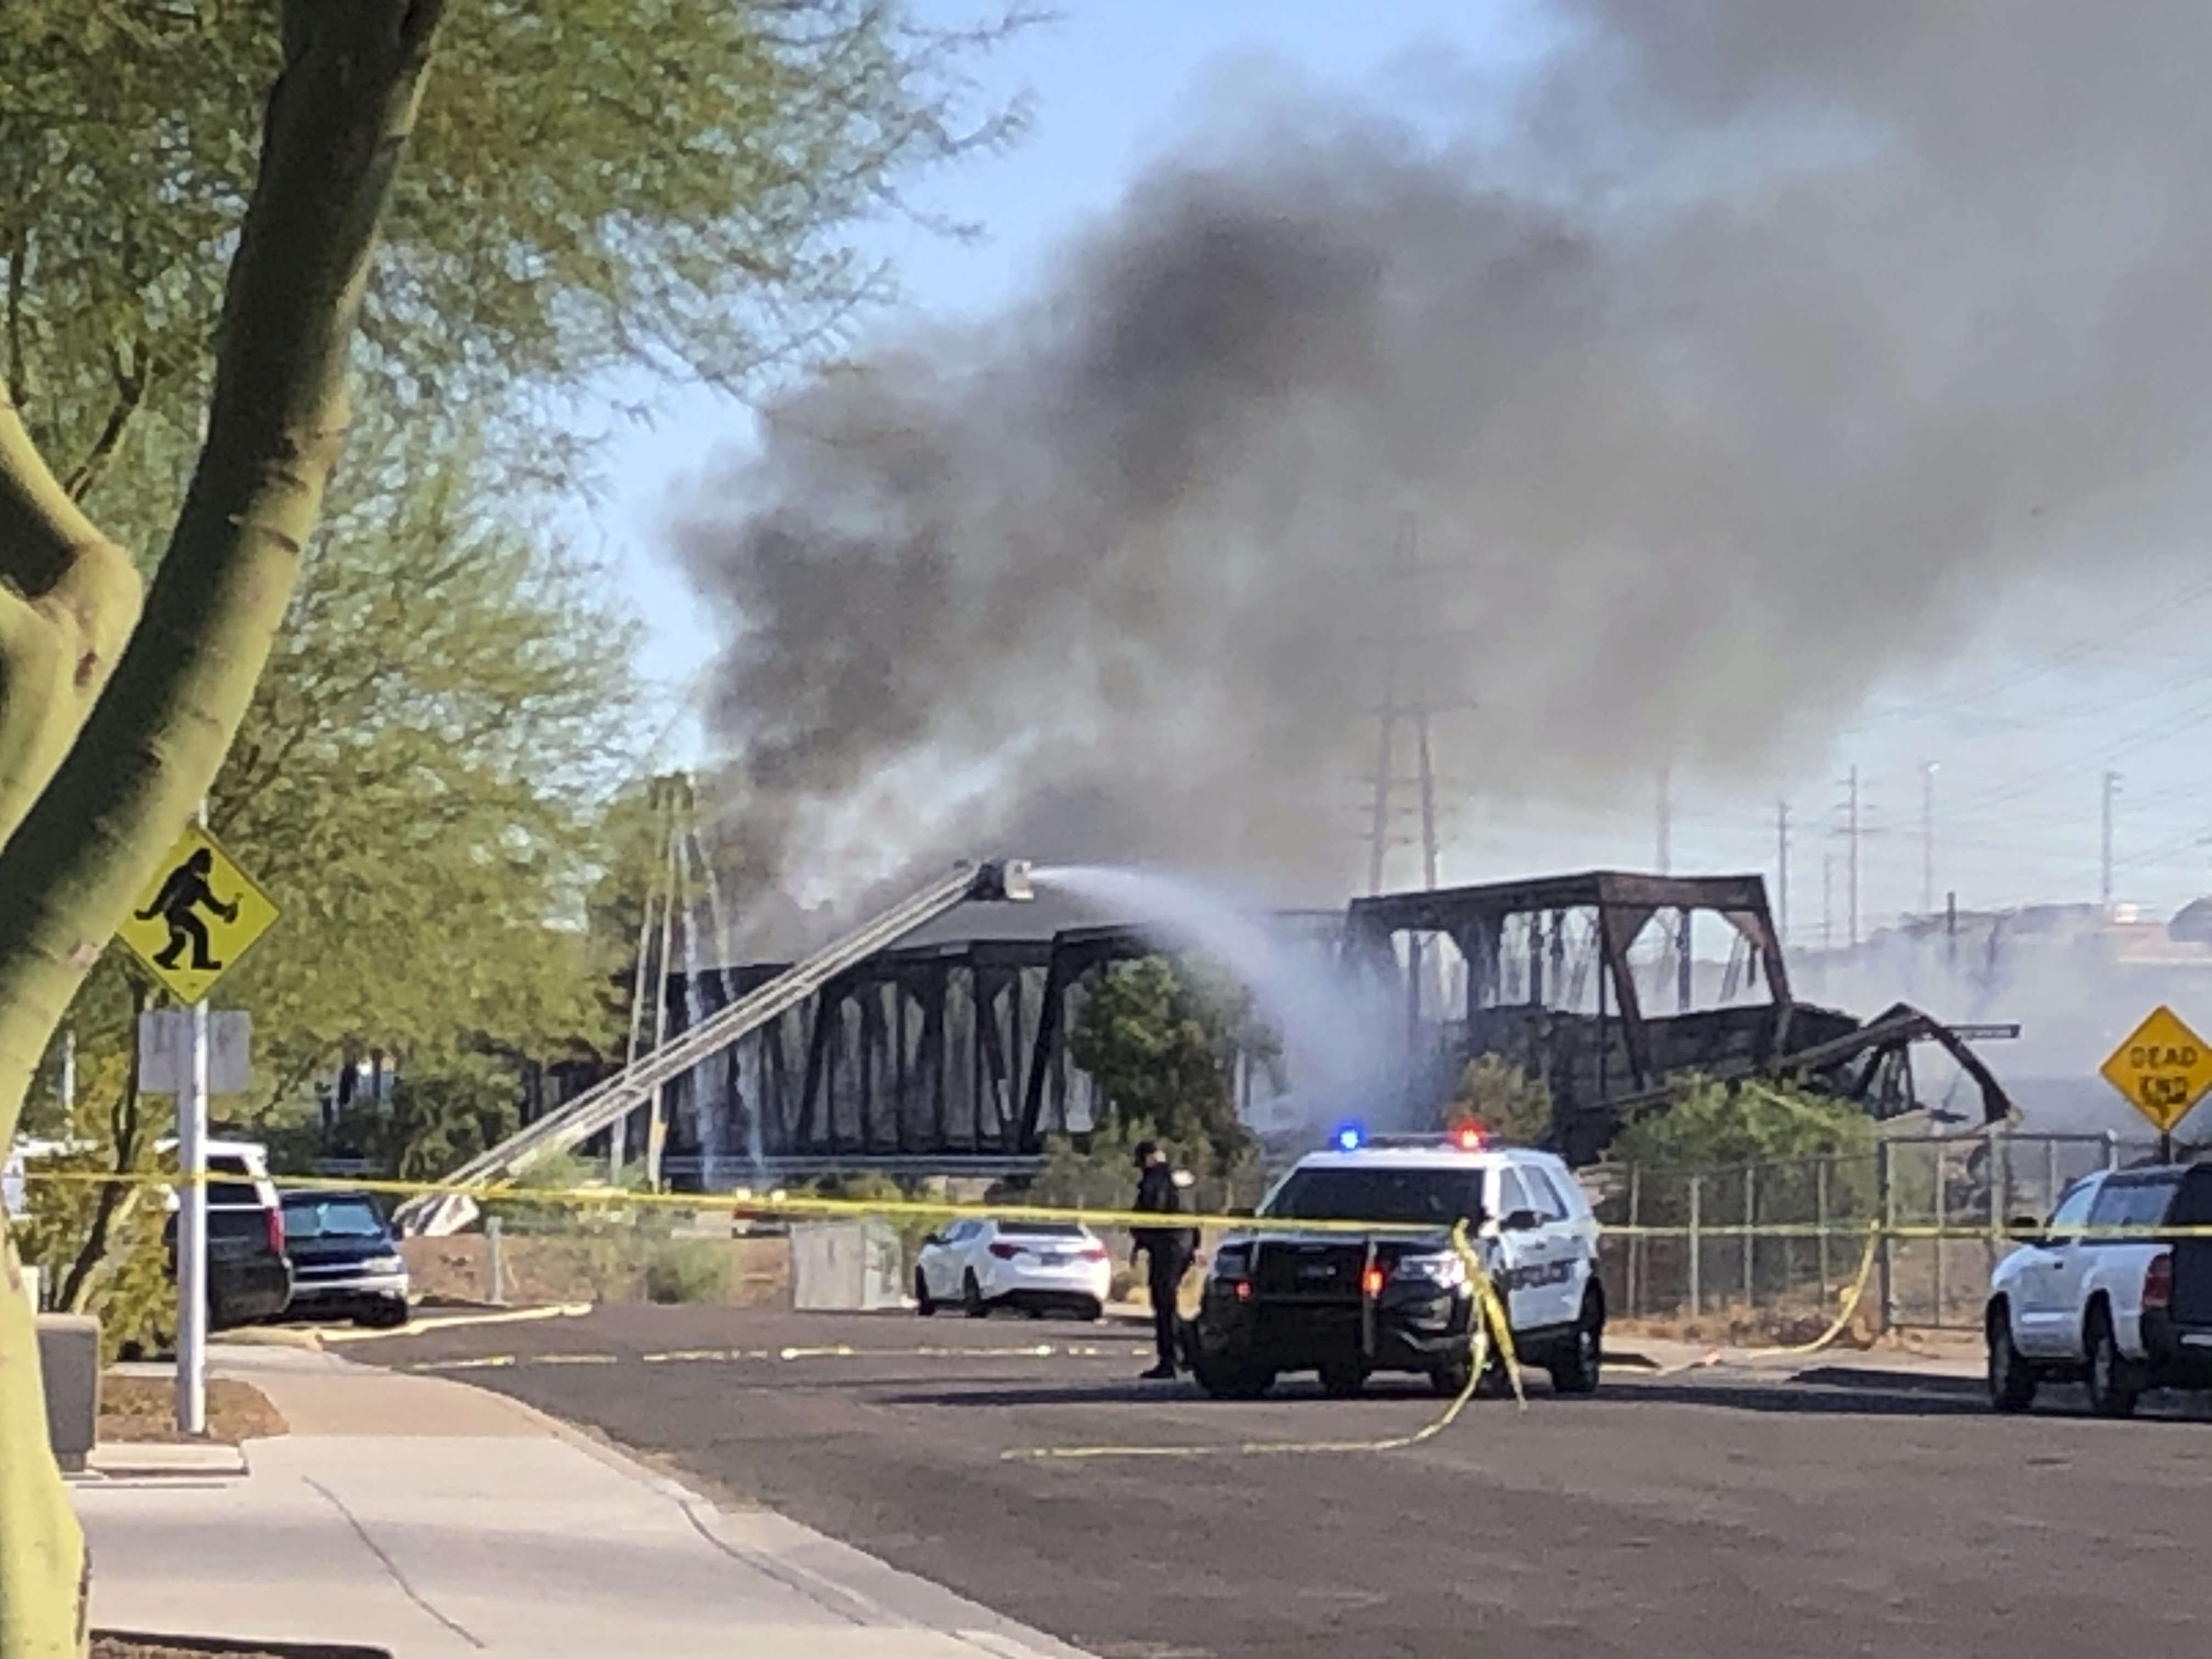 Firefighters respond to the scene of a train derailment in Tempe, Ariz. on July 29, 2020.